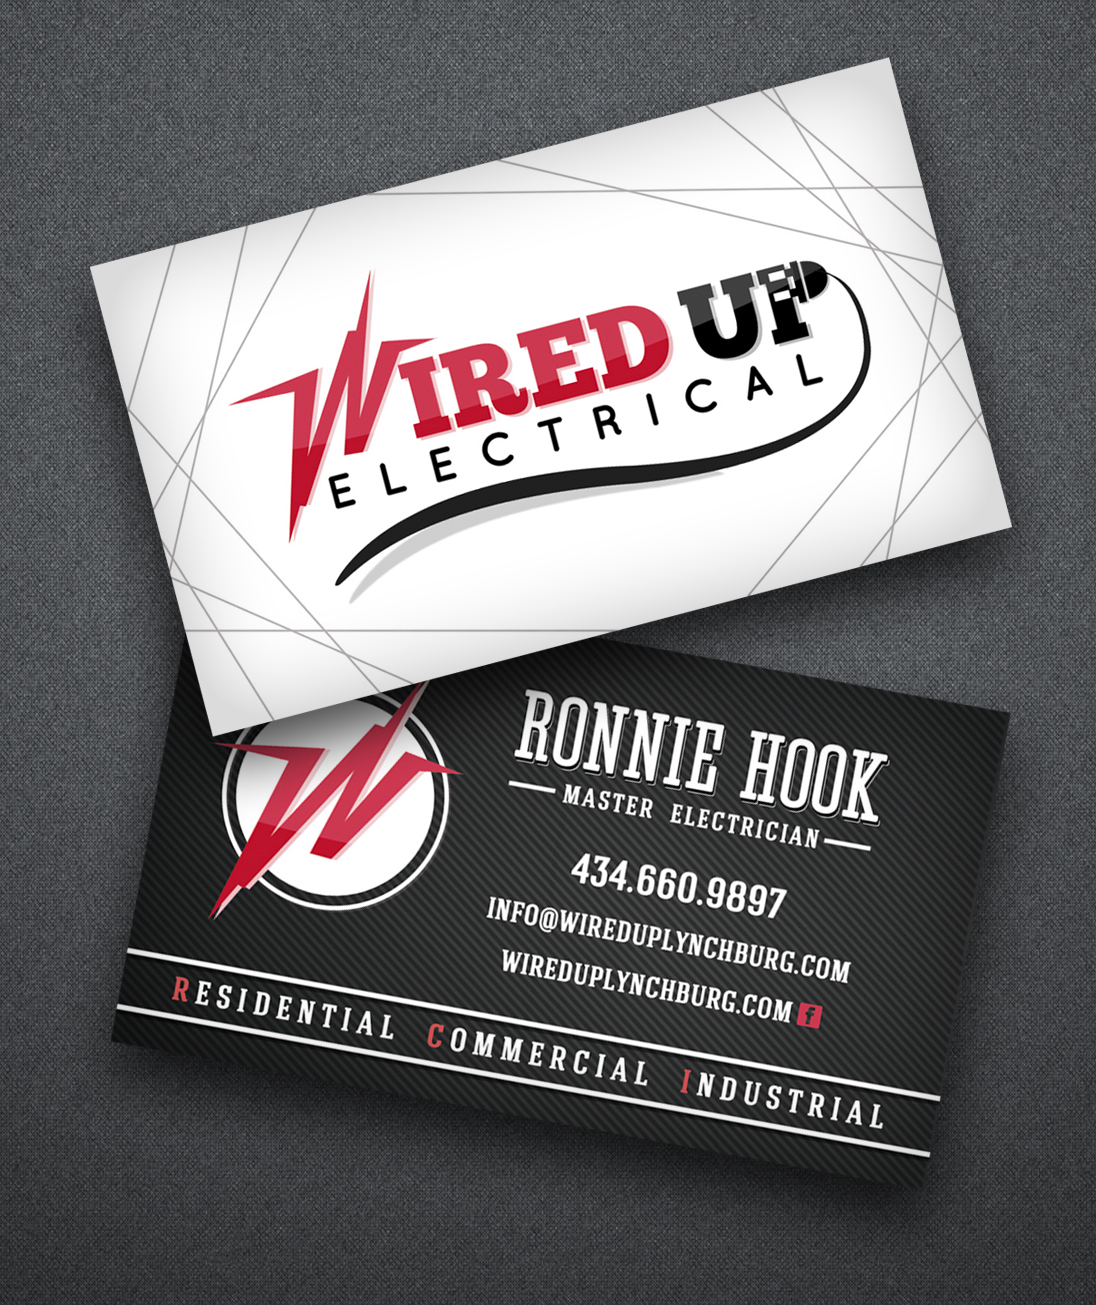 Designed Business Cards For An Electrician.